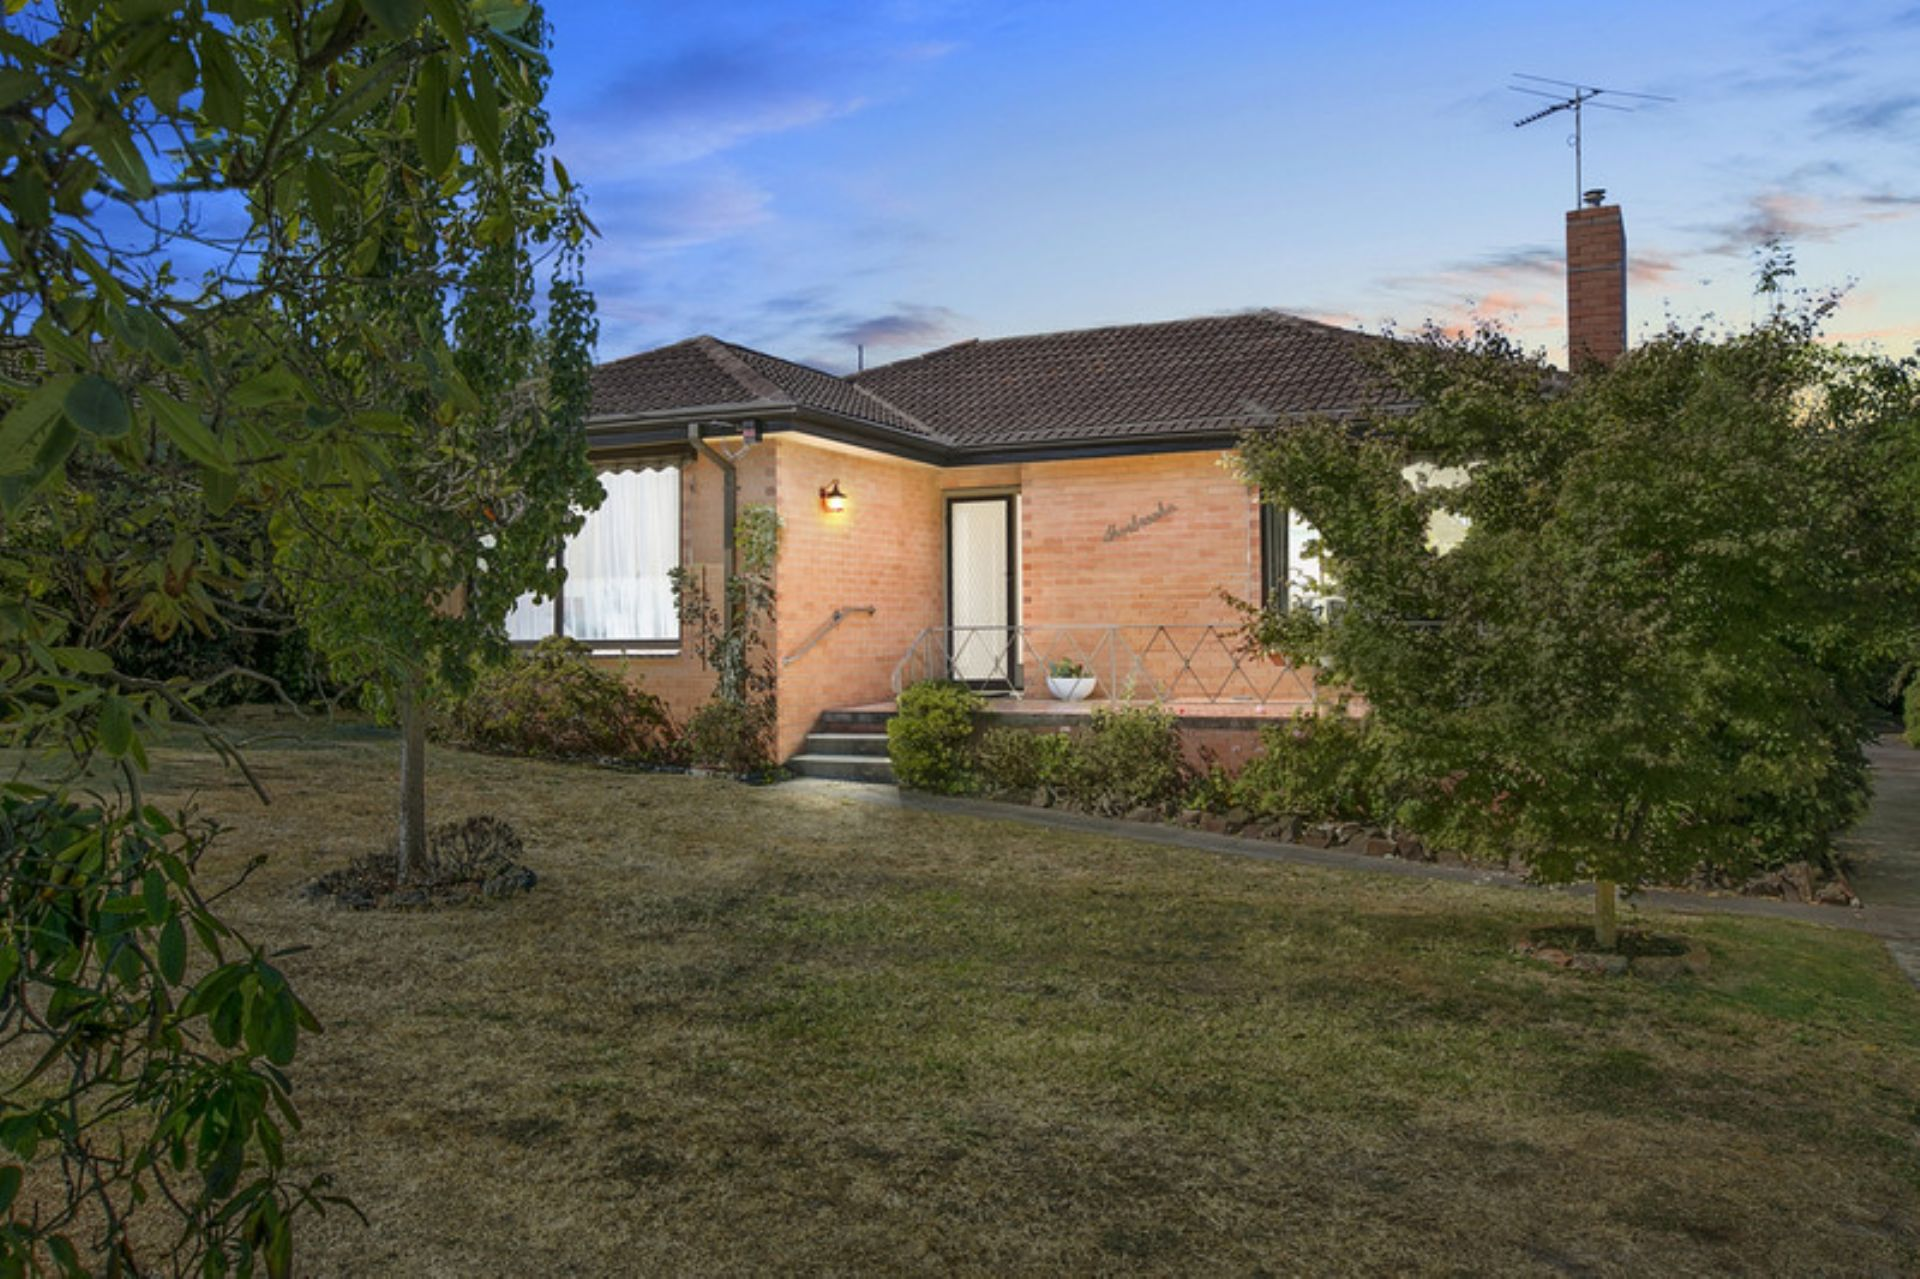 67 Beleura Hill Road, MORNINGTON, VIC, 3931 - Image